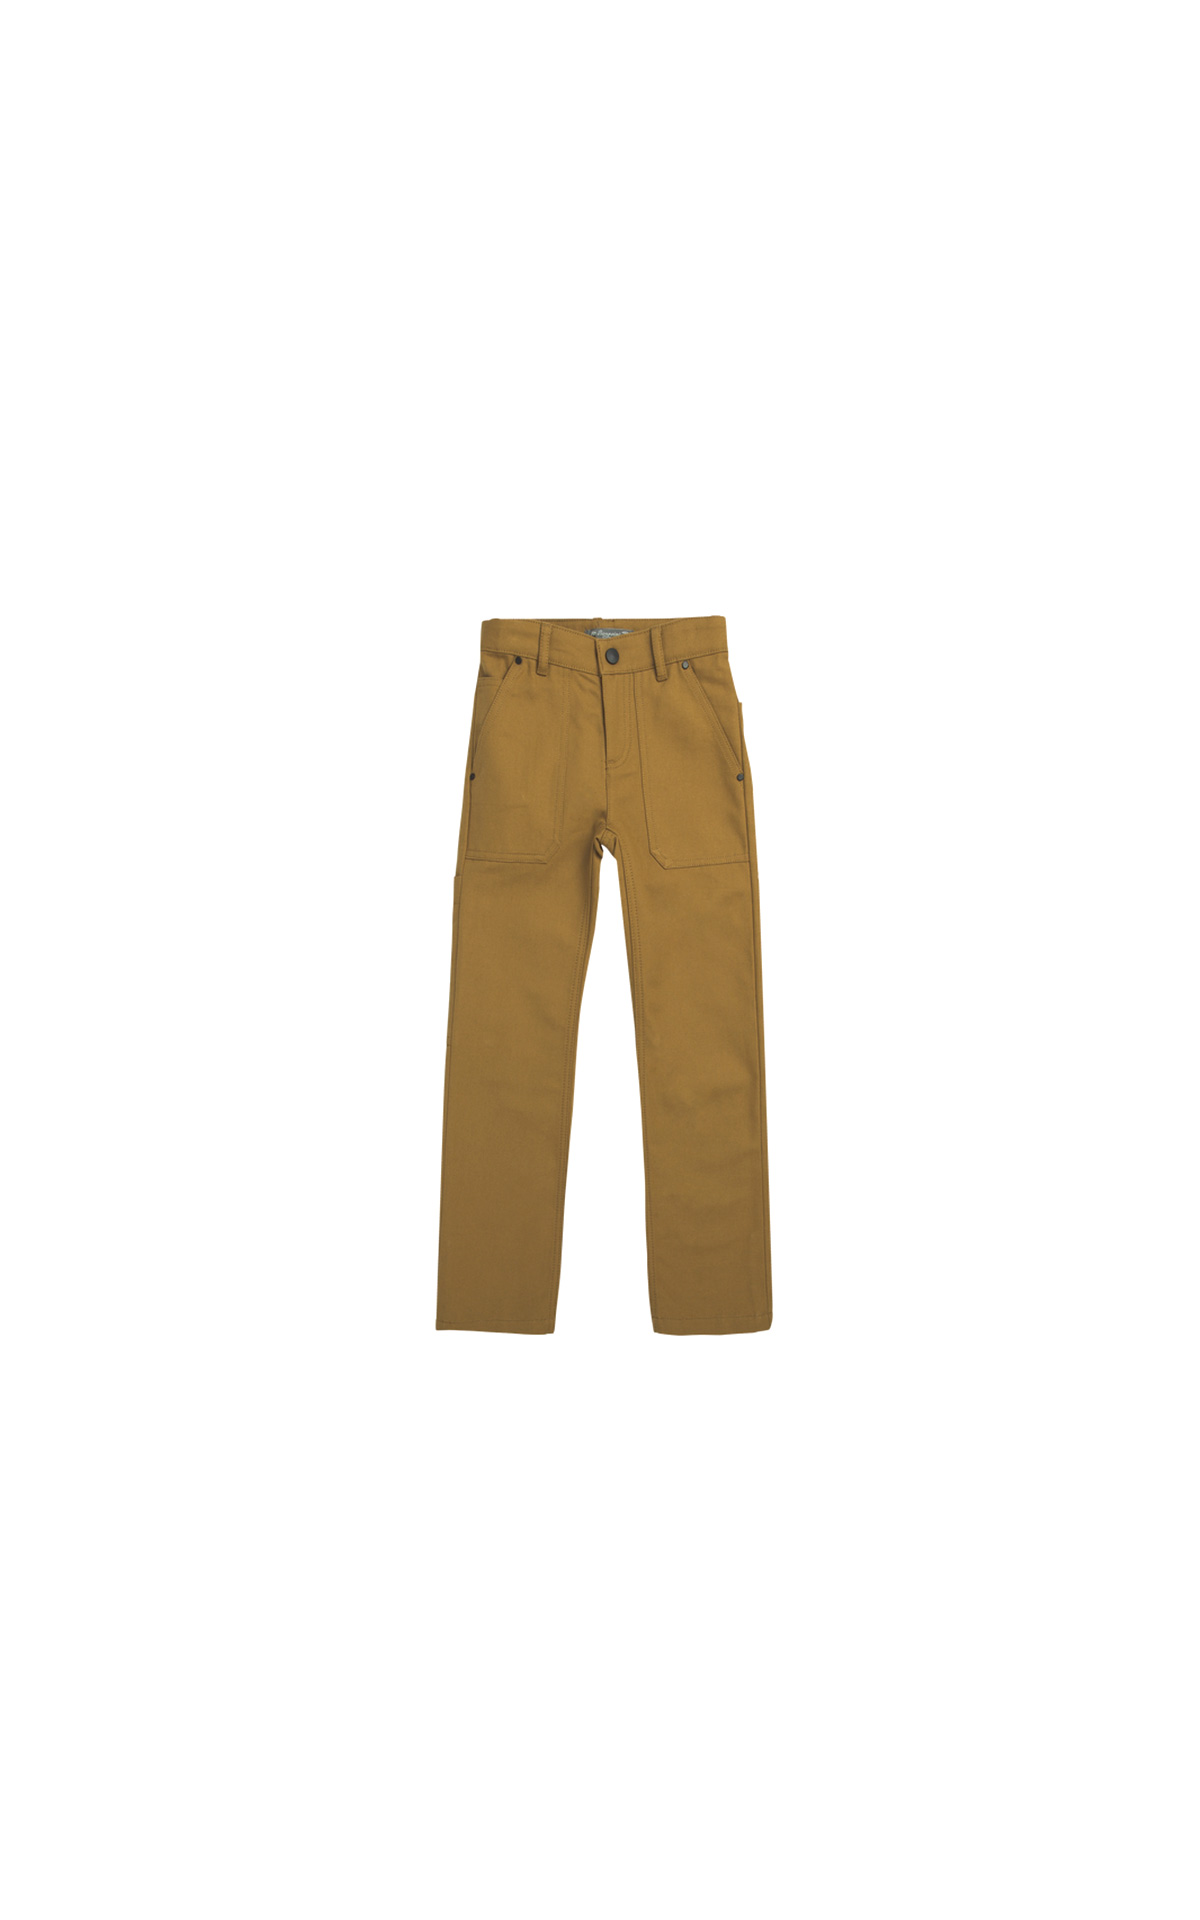 Bonpoint Boy's camel trousers| La Vallée Village